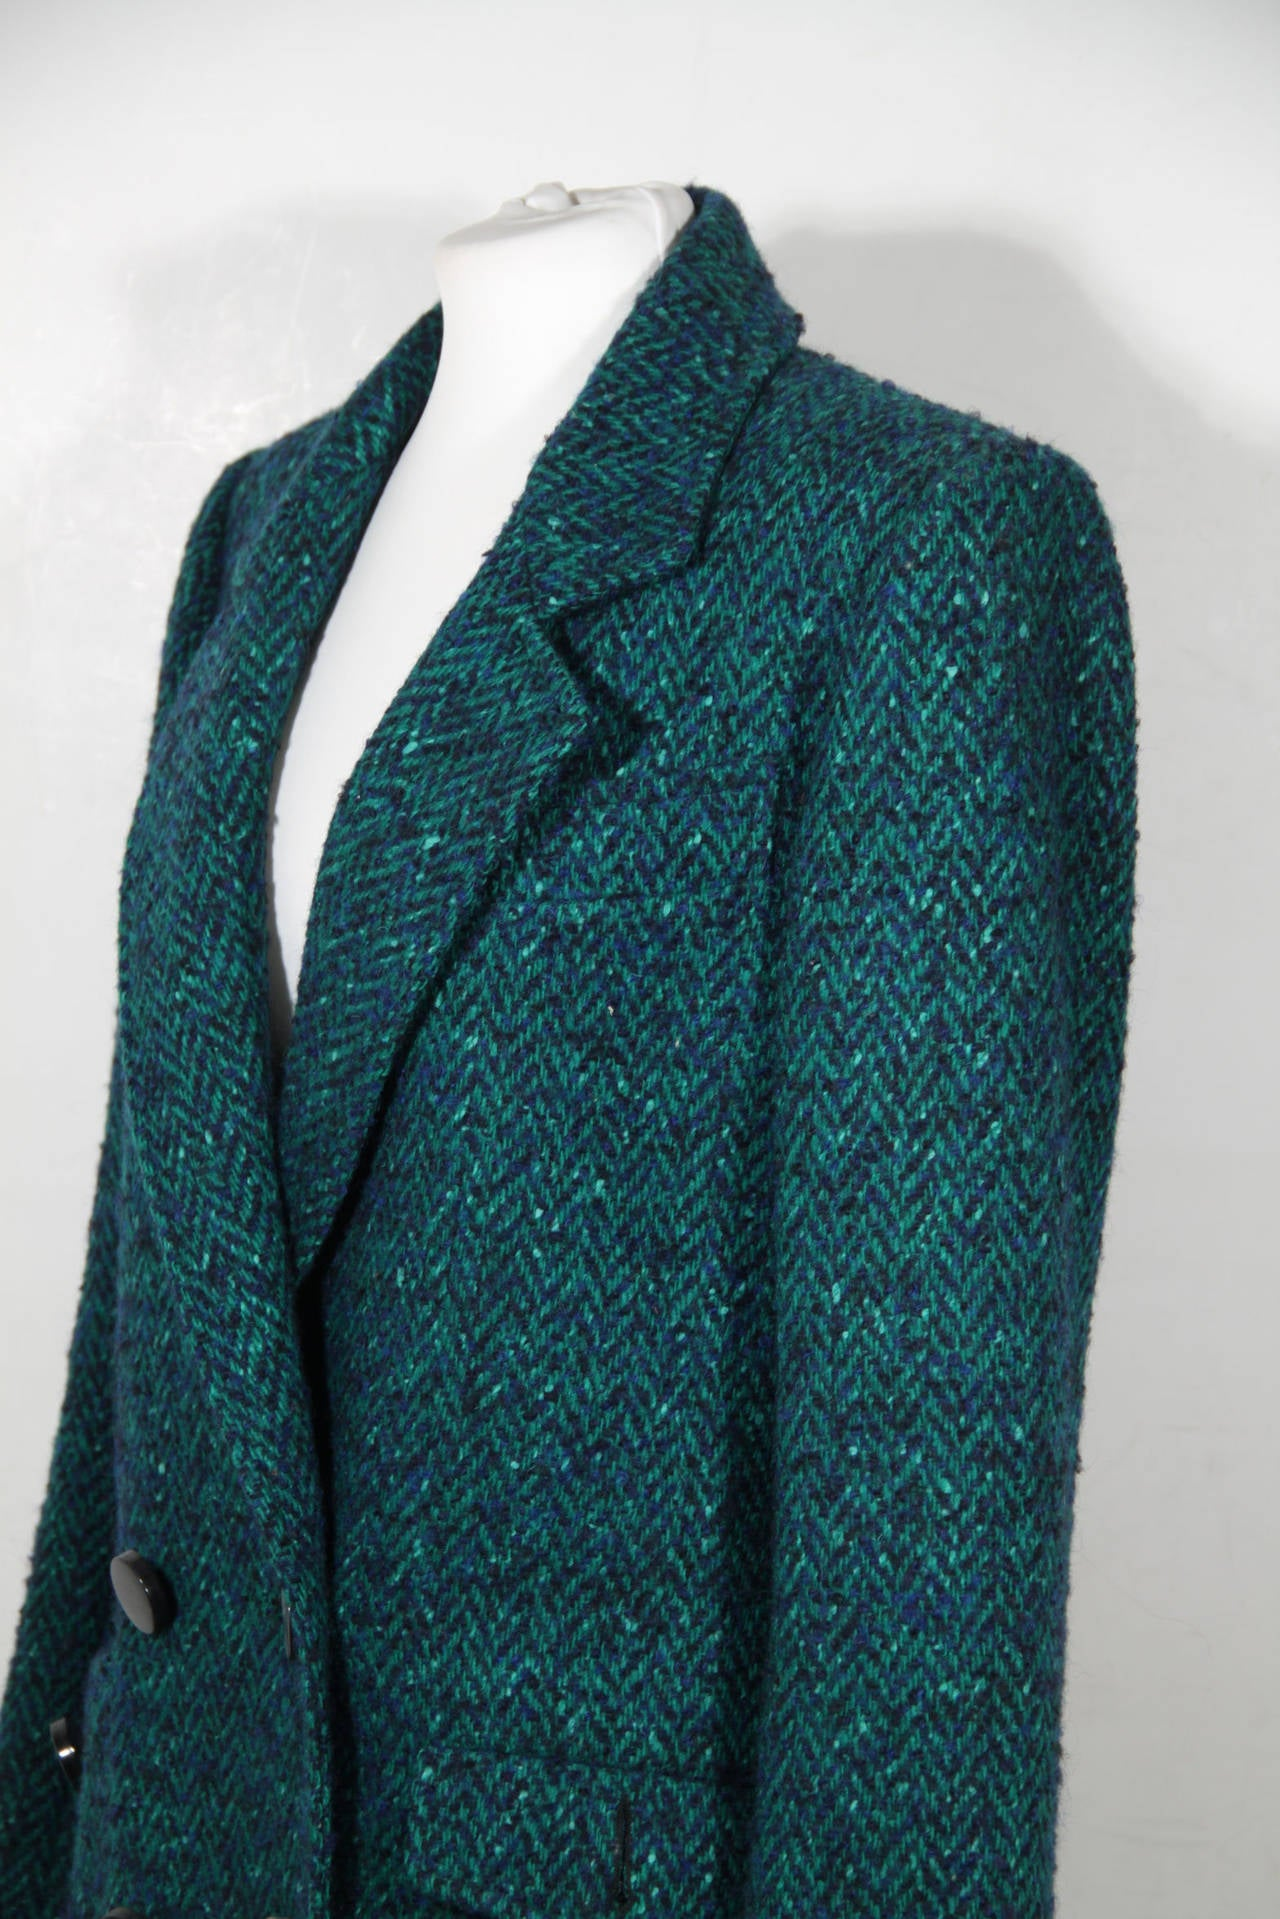 ANDREA ODICINI Italian VINTAGE Green Tweed SUIT Coat & Skirt SET Sz 40 IT In Excellent Condition For Sale In Rome, Rome